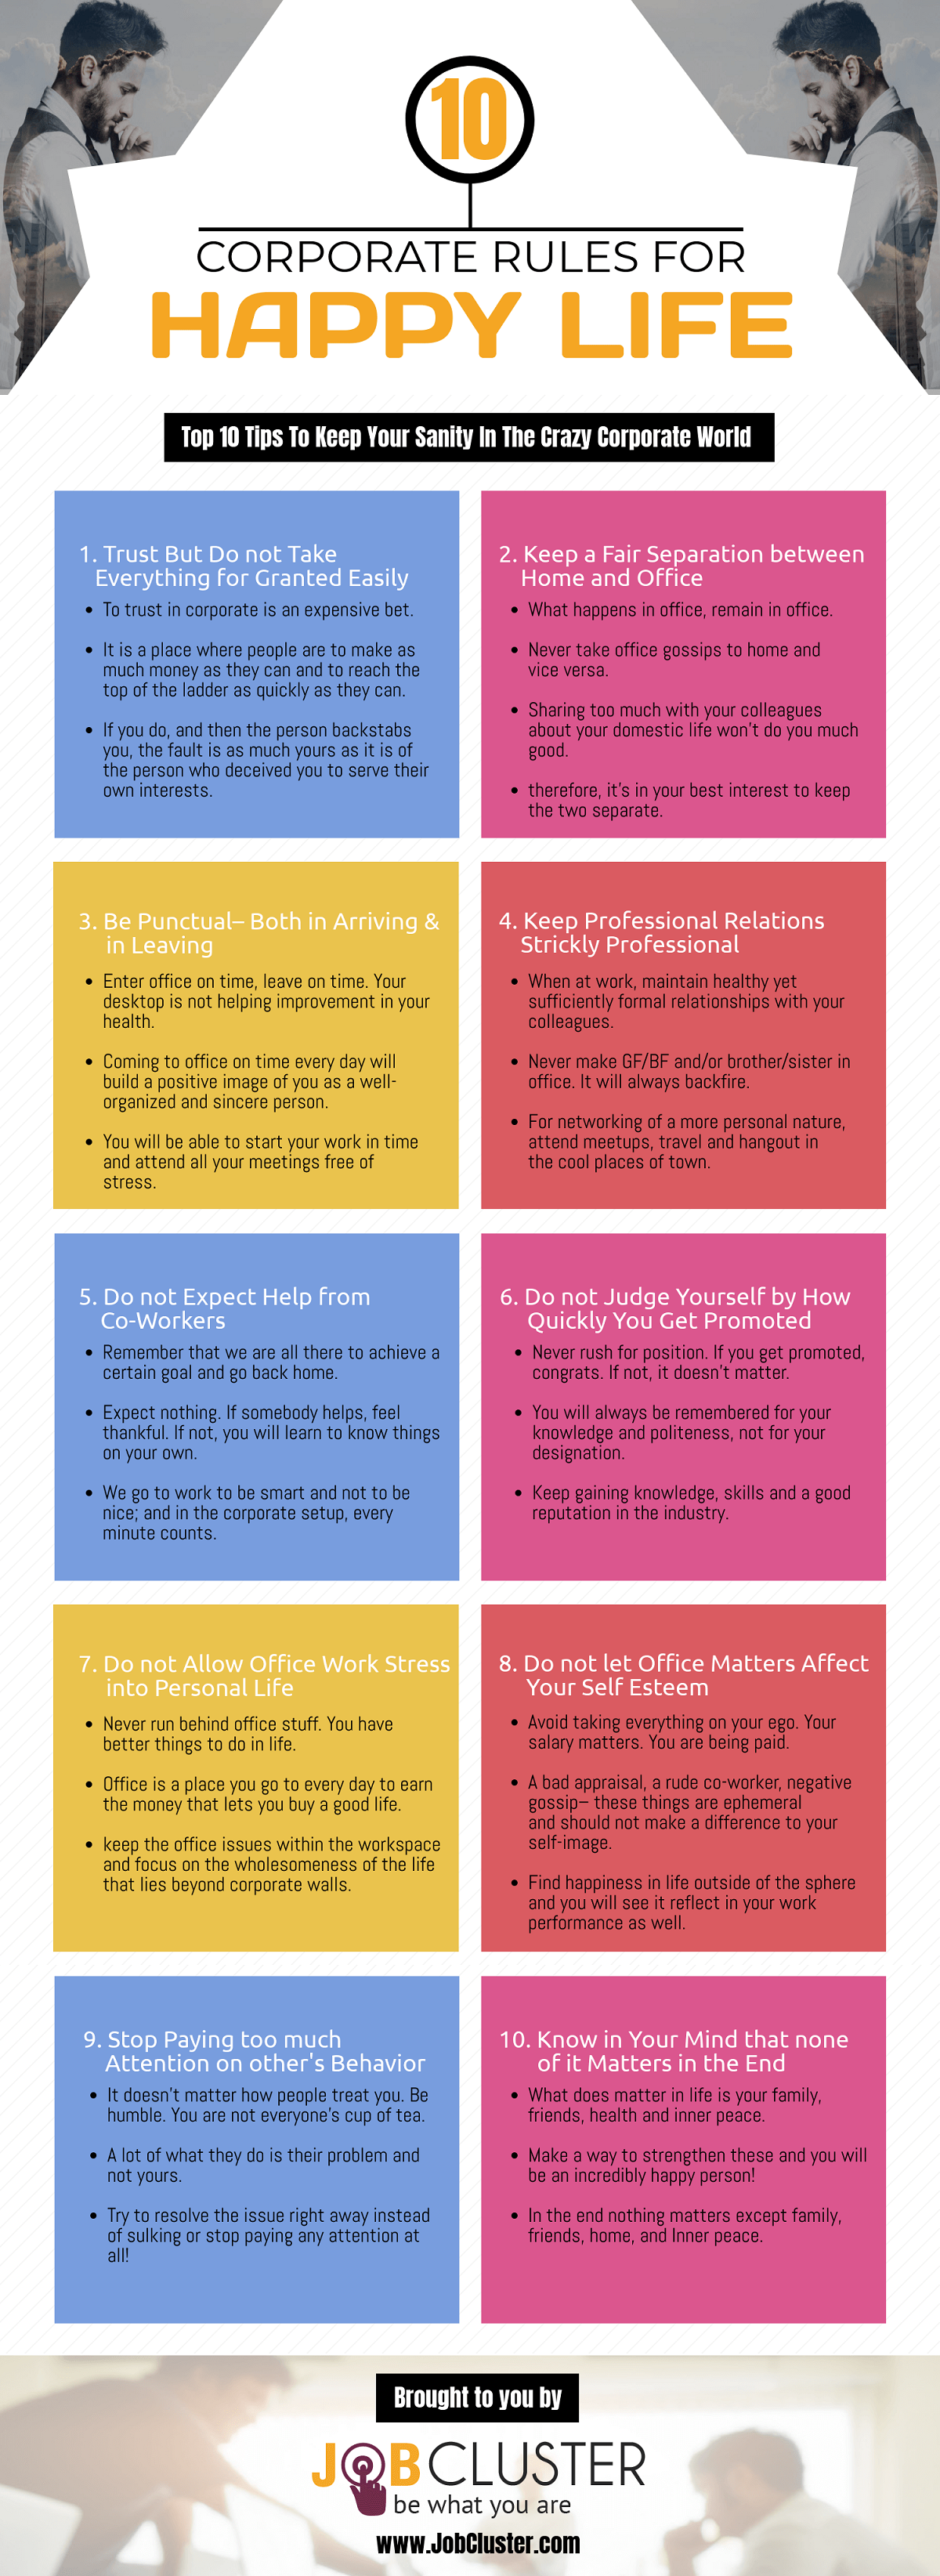 10 Corporate Rules for a Happy Life #infographic